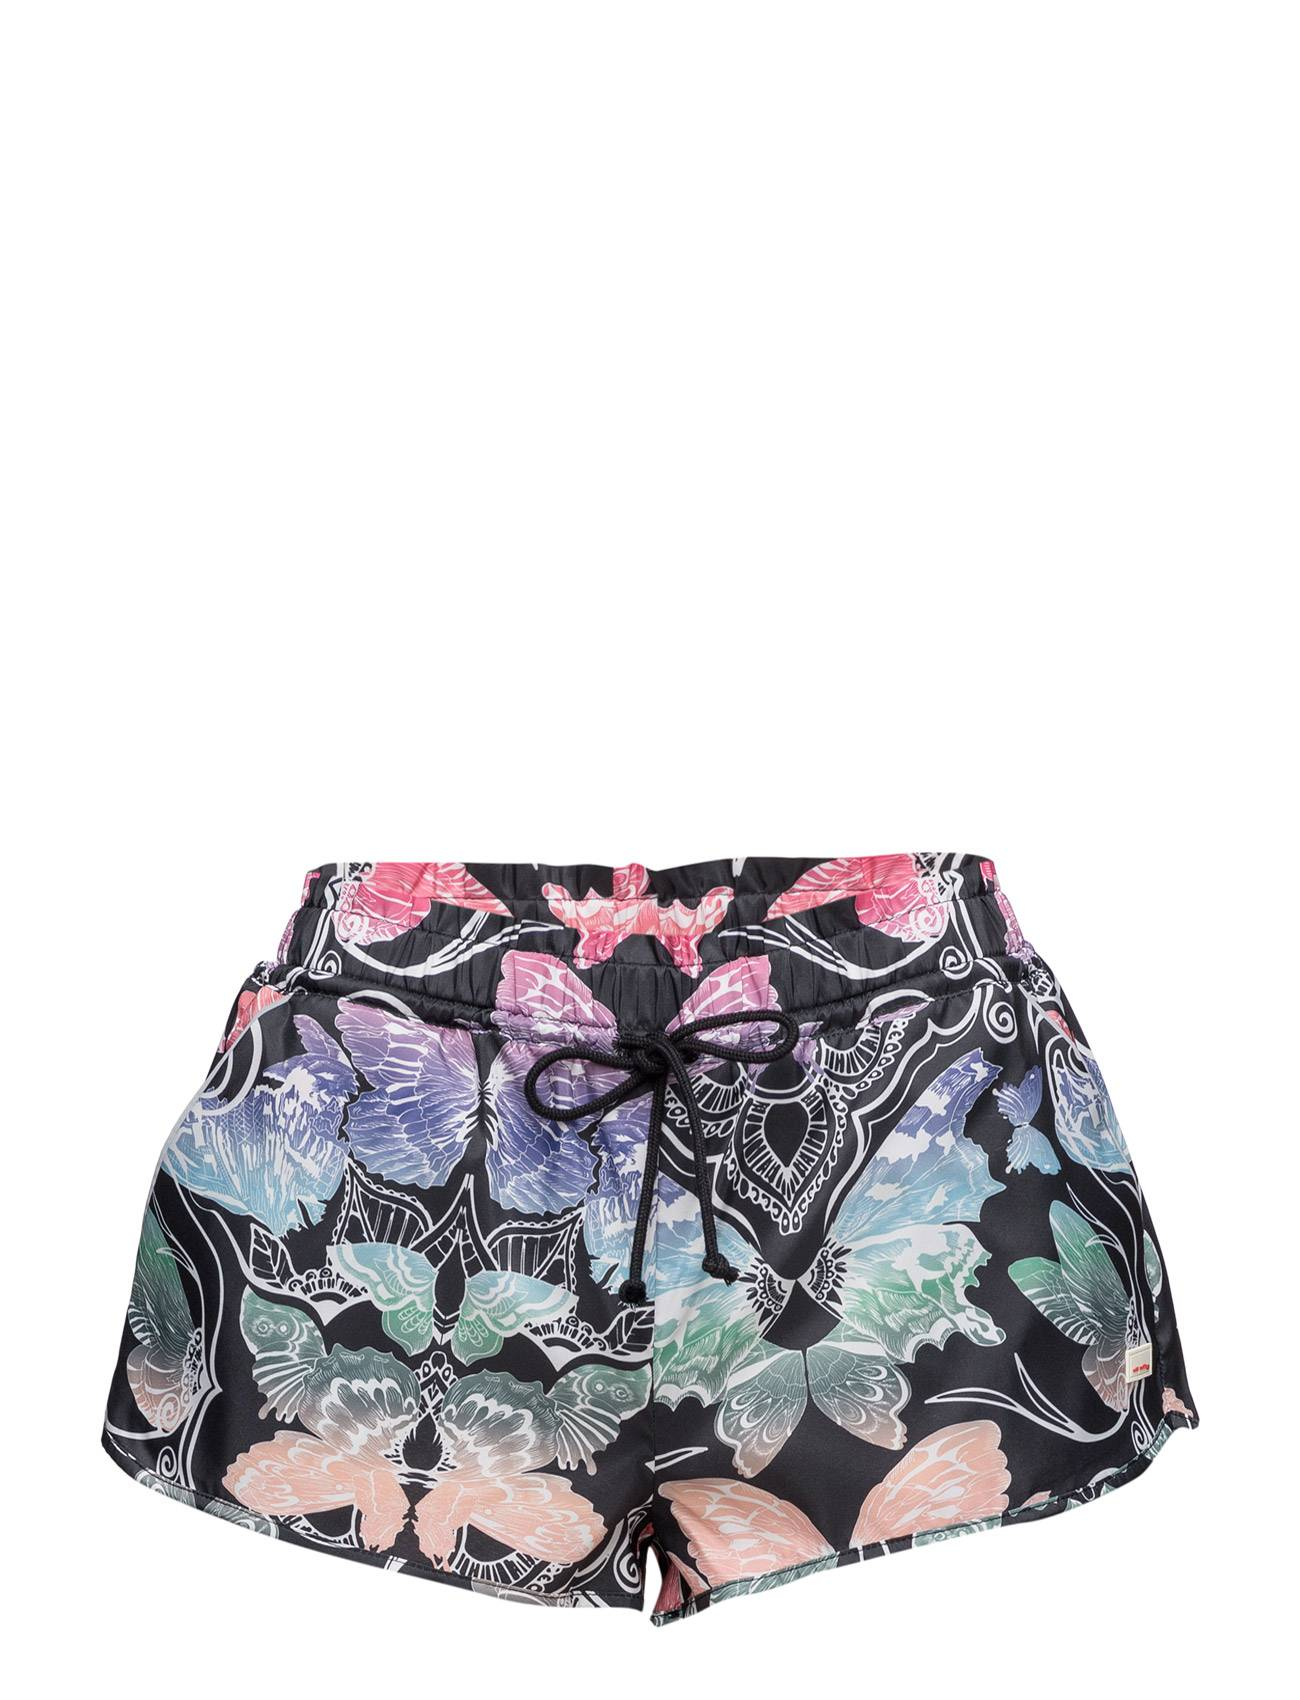 ODD MOLLY ACTIVE WEAR Upbeat Shorts